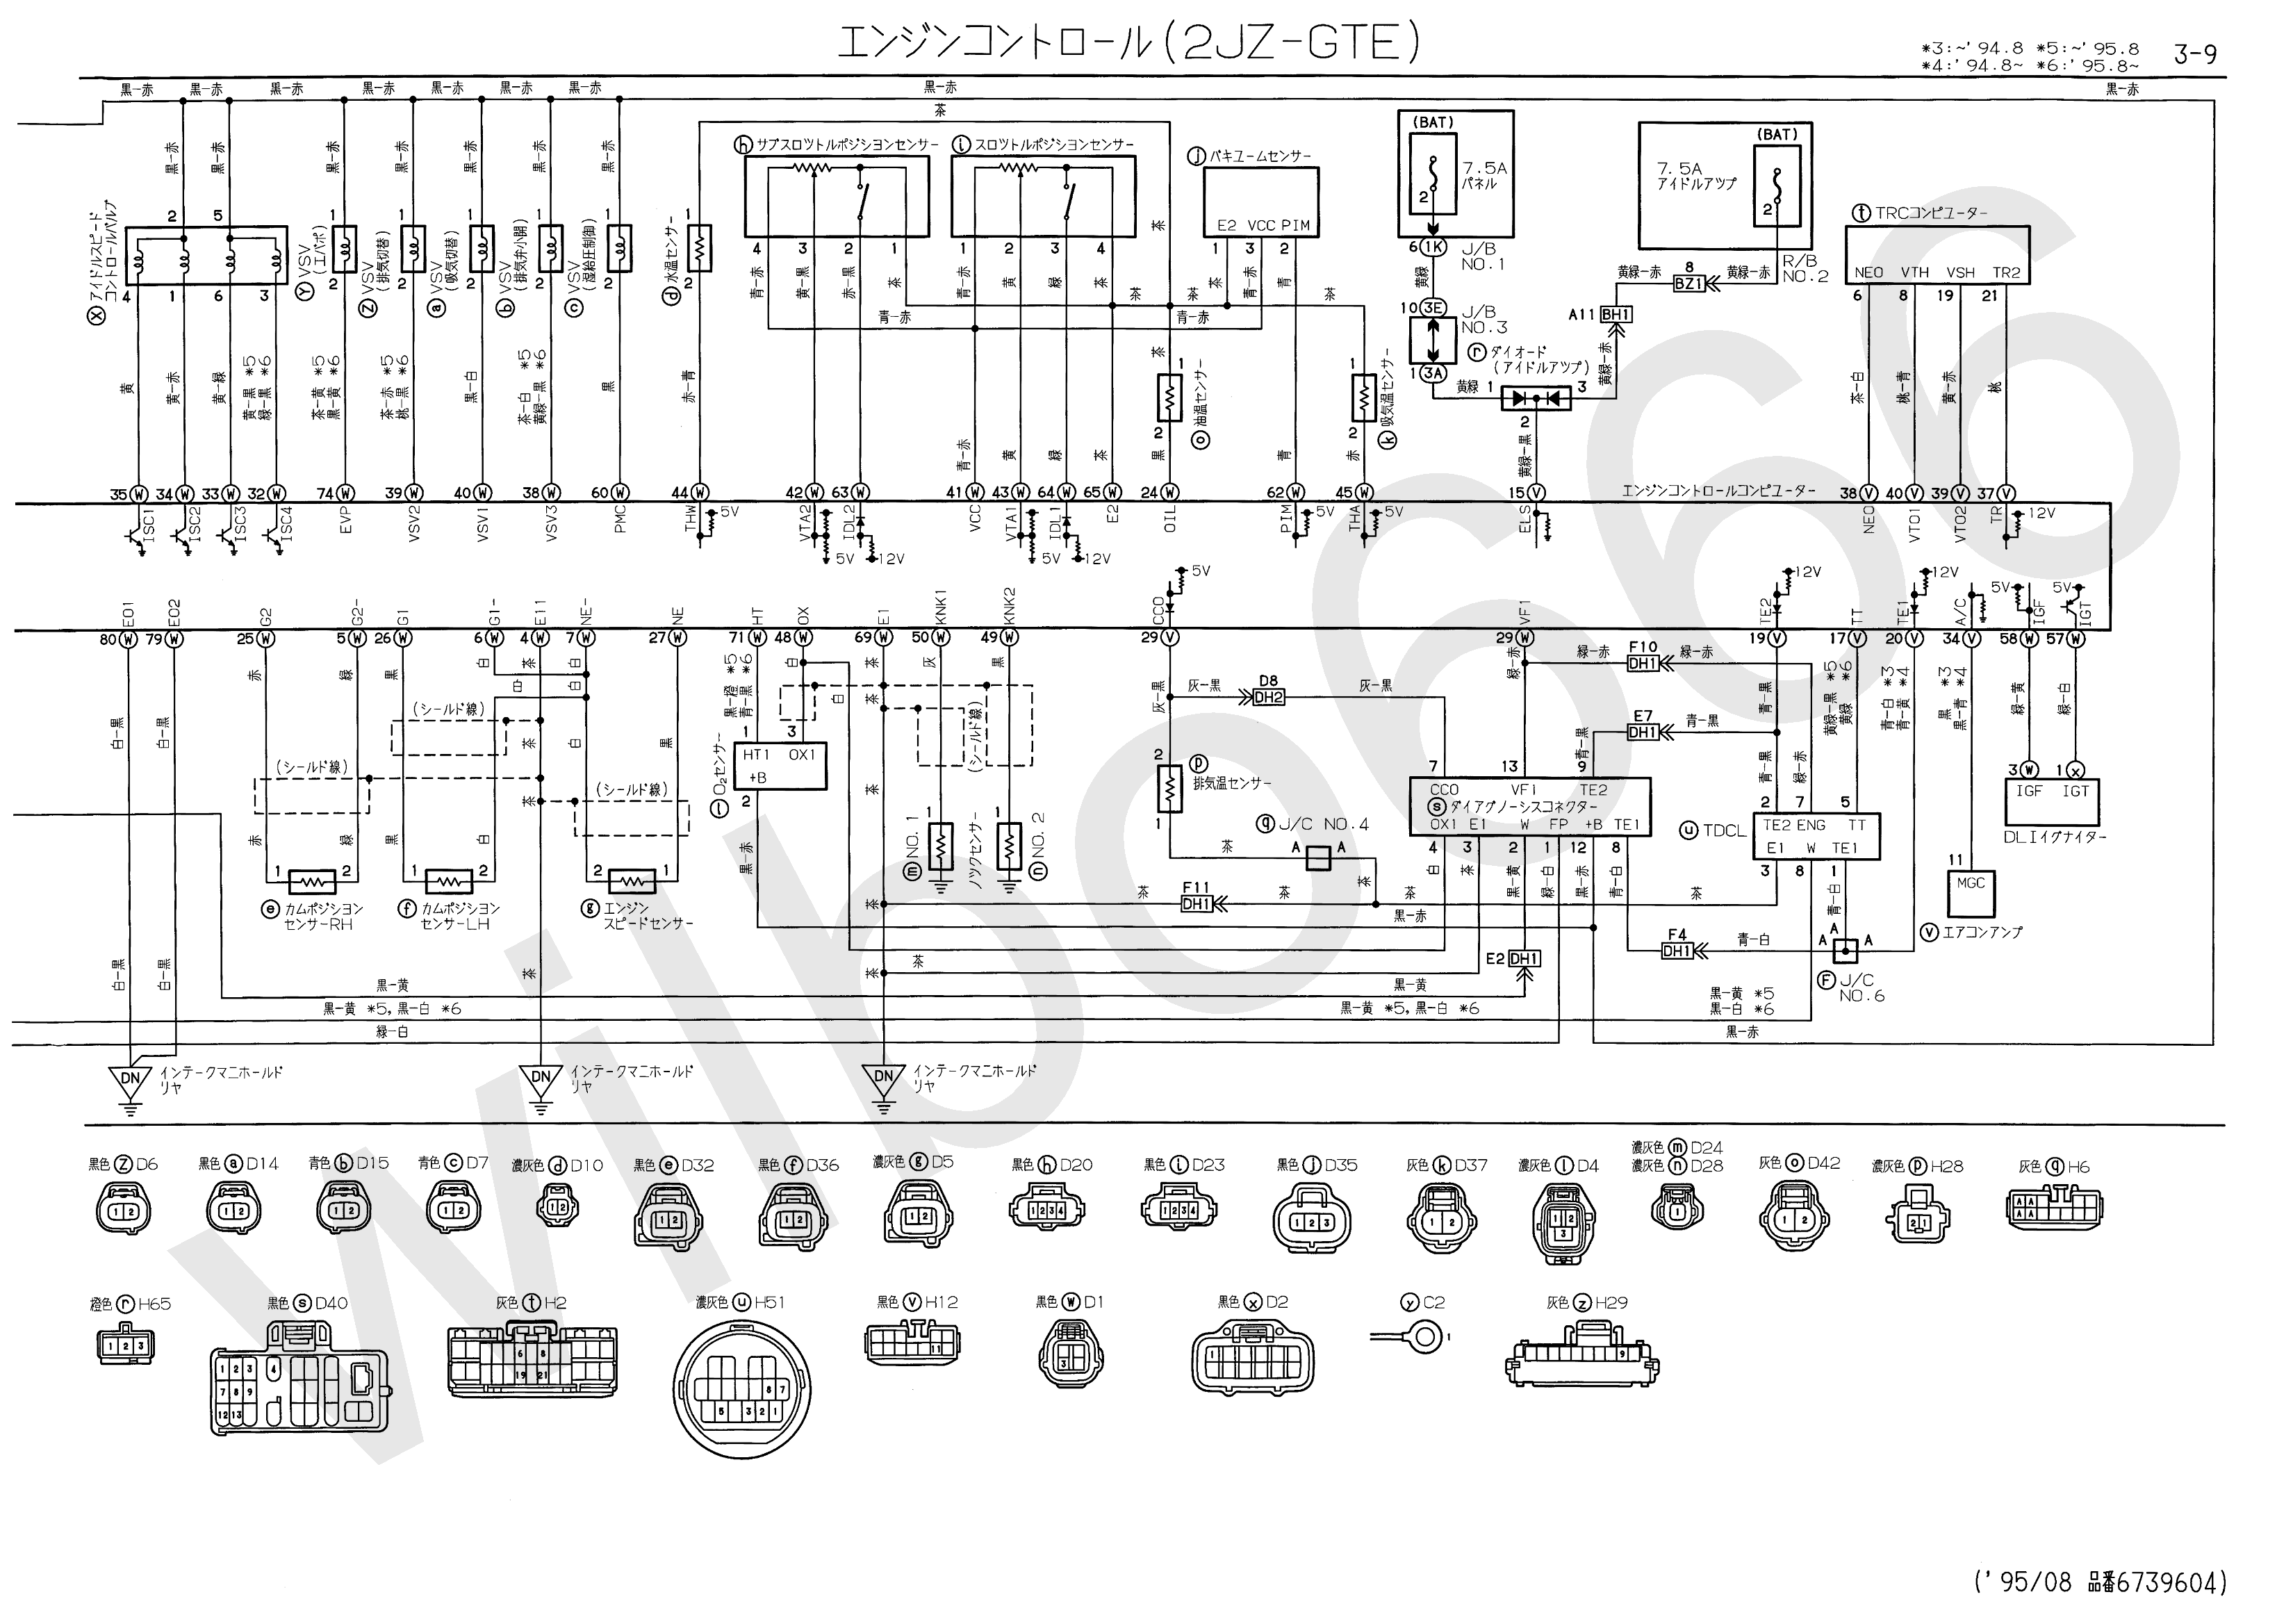 2jz Ecu Wiring Diagram Library E36 Maf Jzs147 Toyota Aristo Gte Diagrams